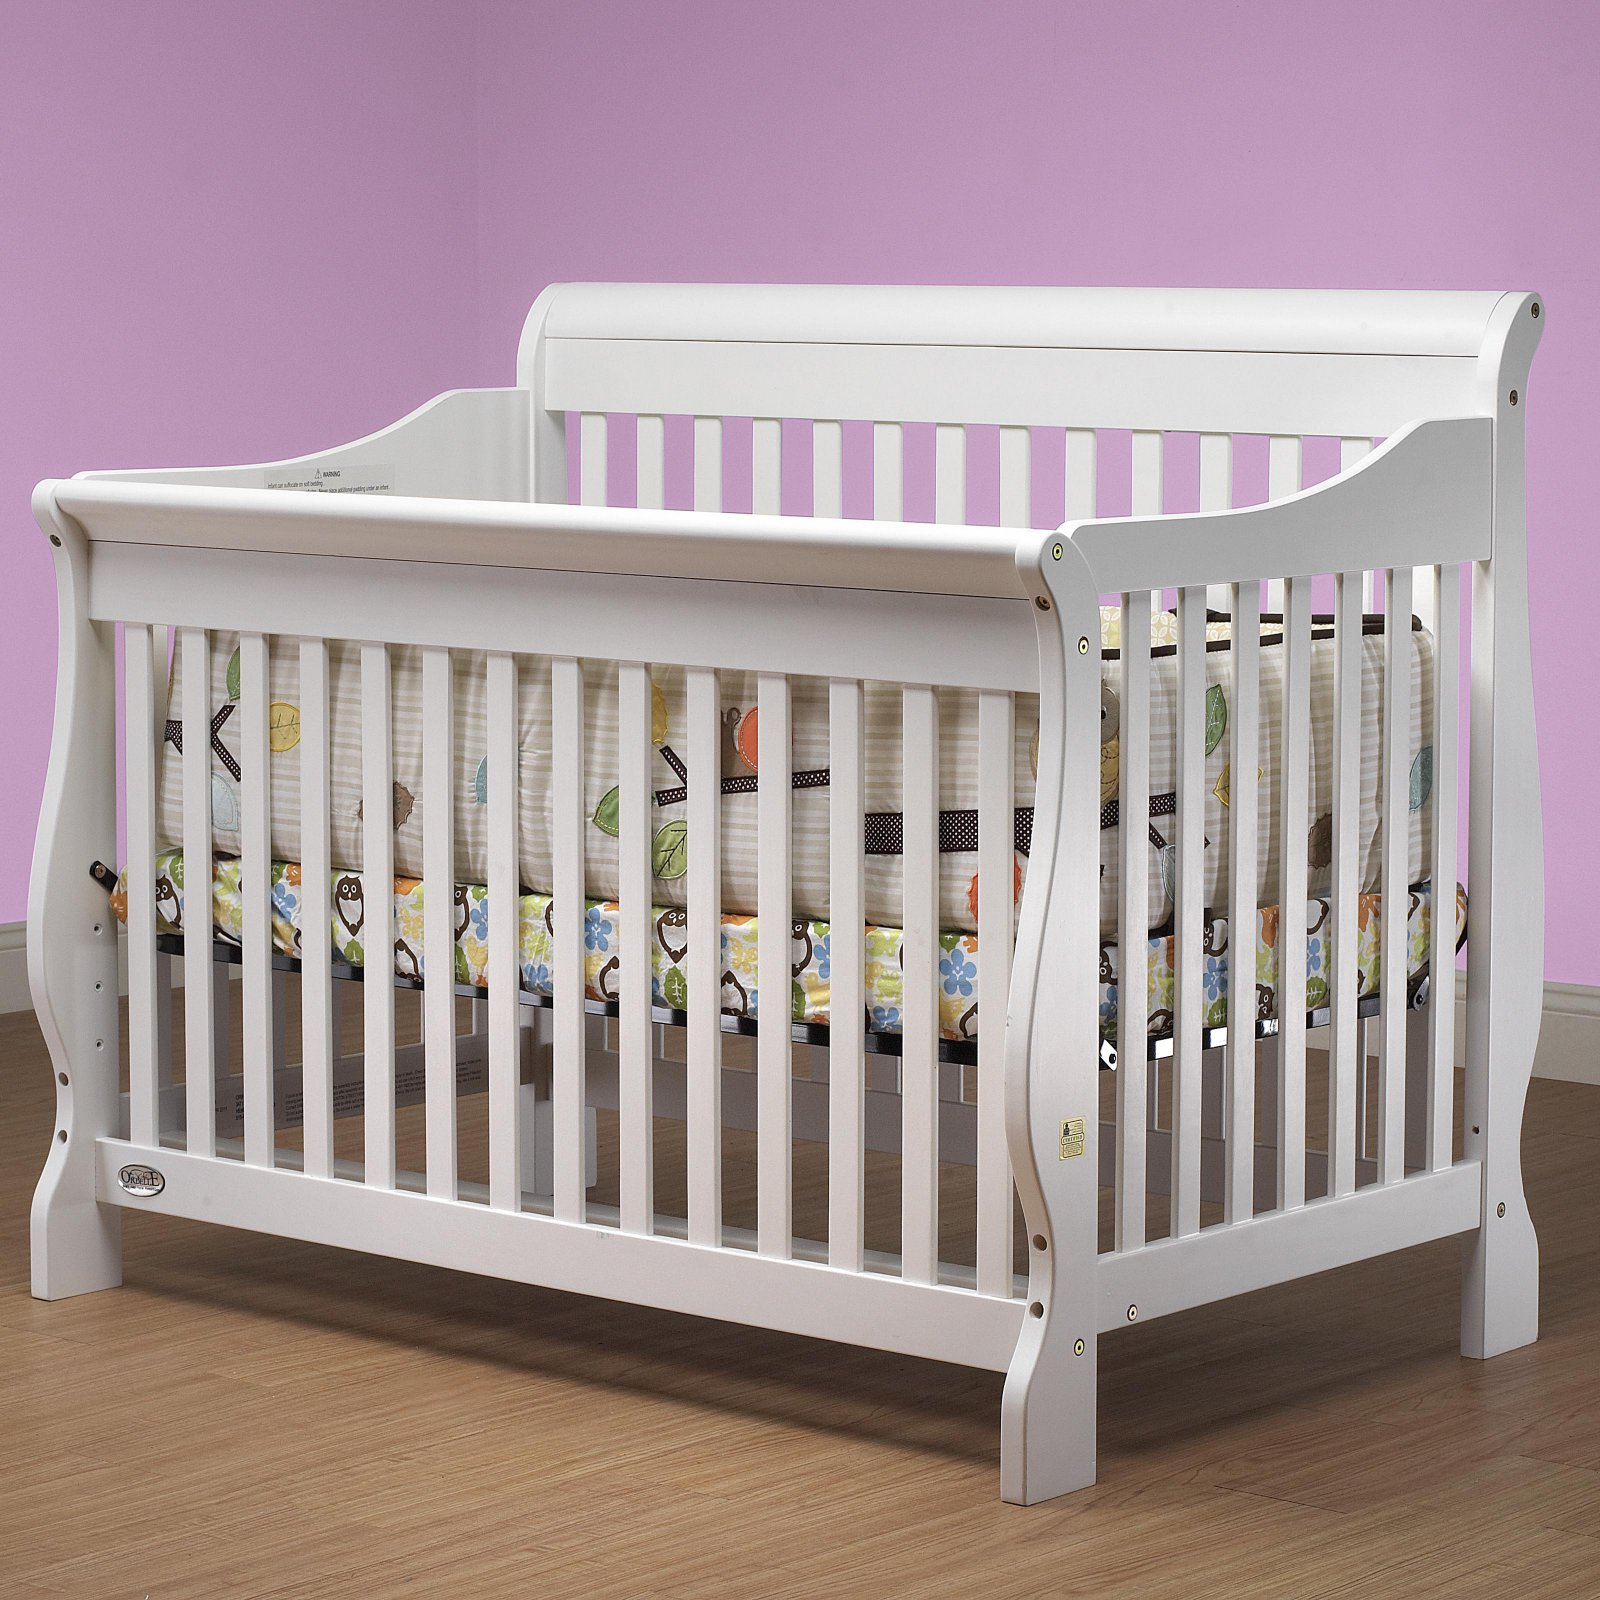 Orbelle Lifestyle 4-in-1 Sleigh Crib